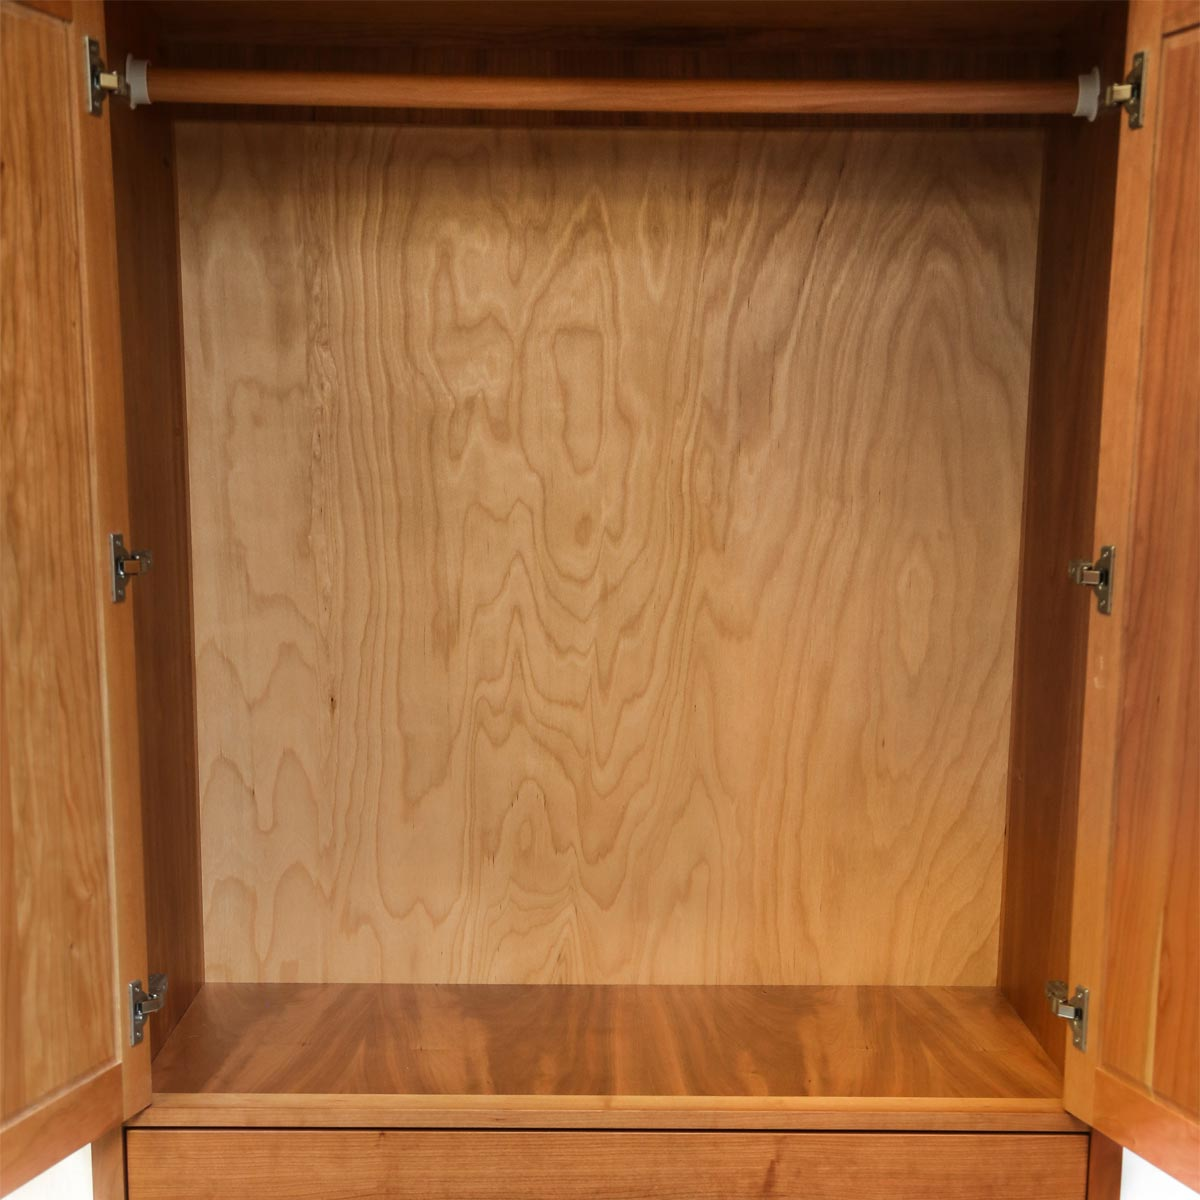 Storage space of classic cherry Shaker wardrobe, from Maine's Chilton Furniture Co.